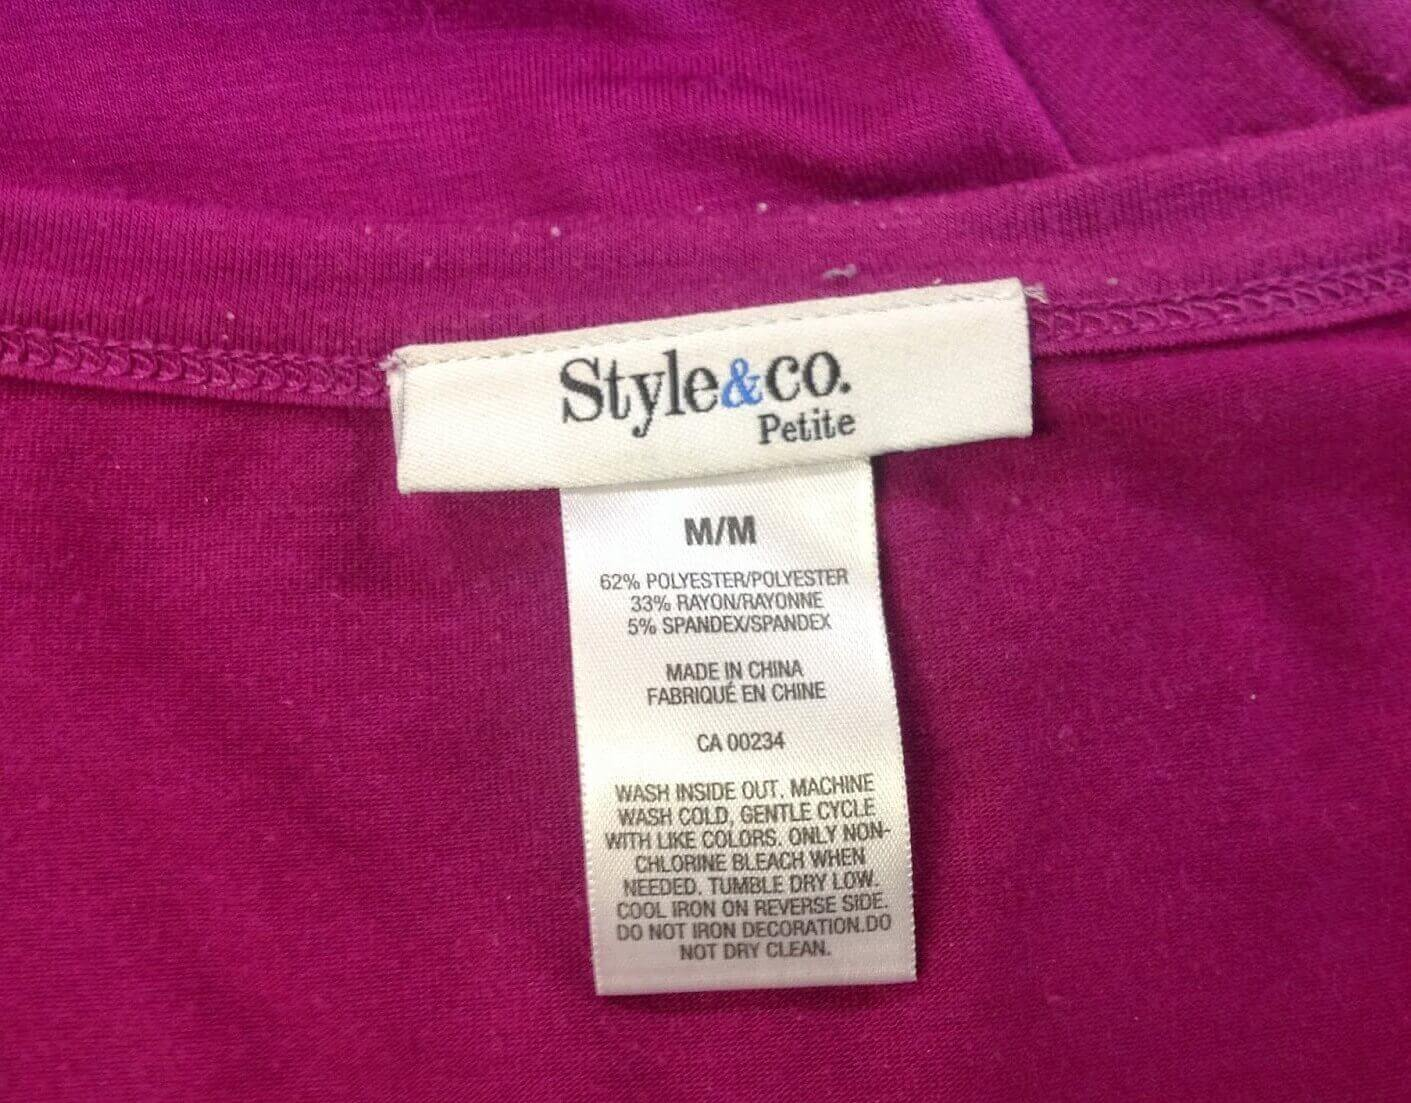 A tag for the washing and care of the best full figure bras